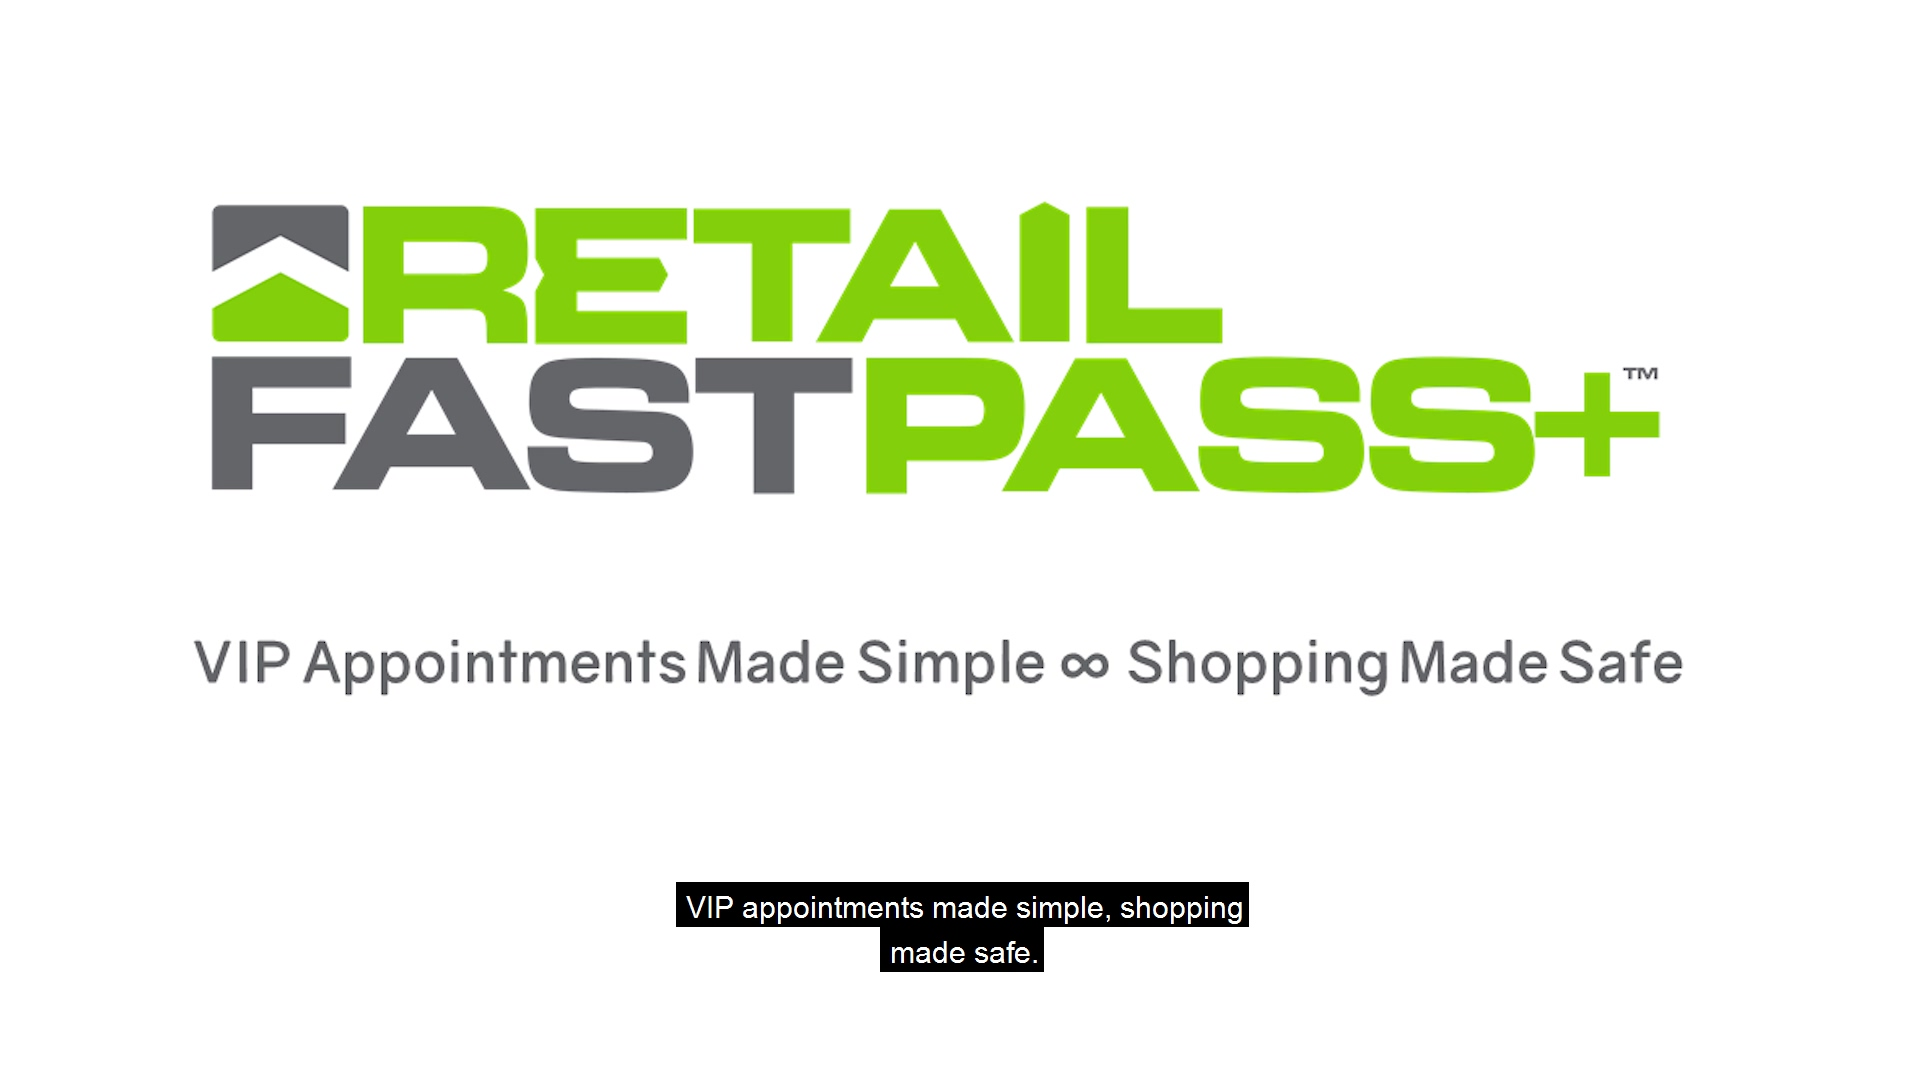 Retail Fast Pass+ FINAL with Captions